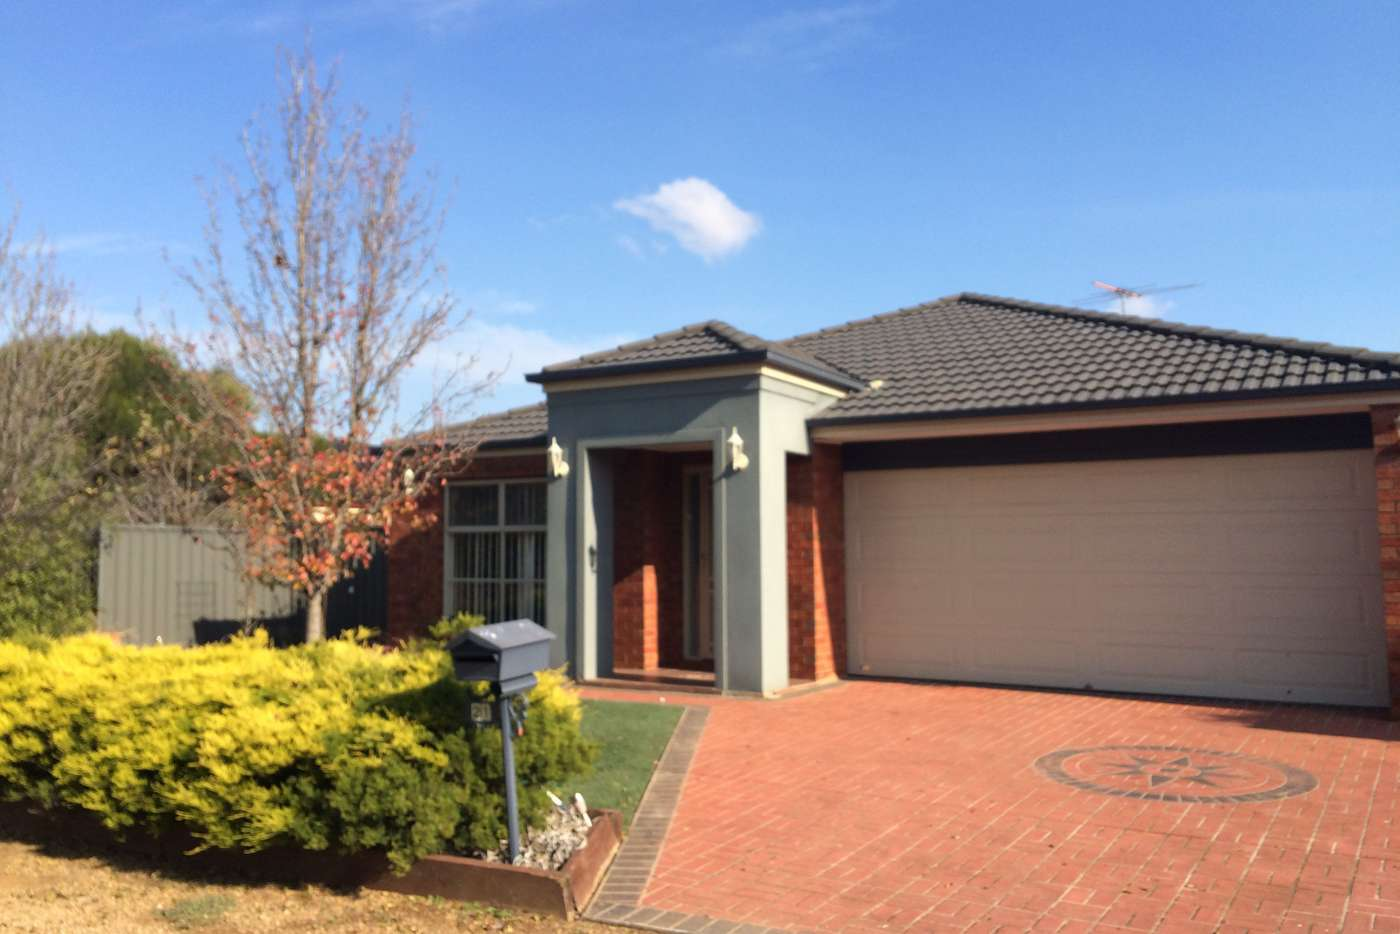 Main view of Homely house listing, 21 Klippel Way, Caroline Springs VIC 3023